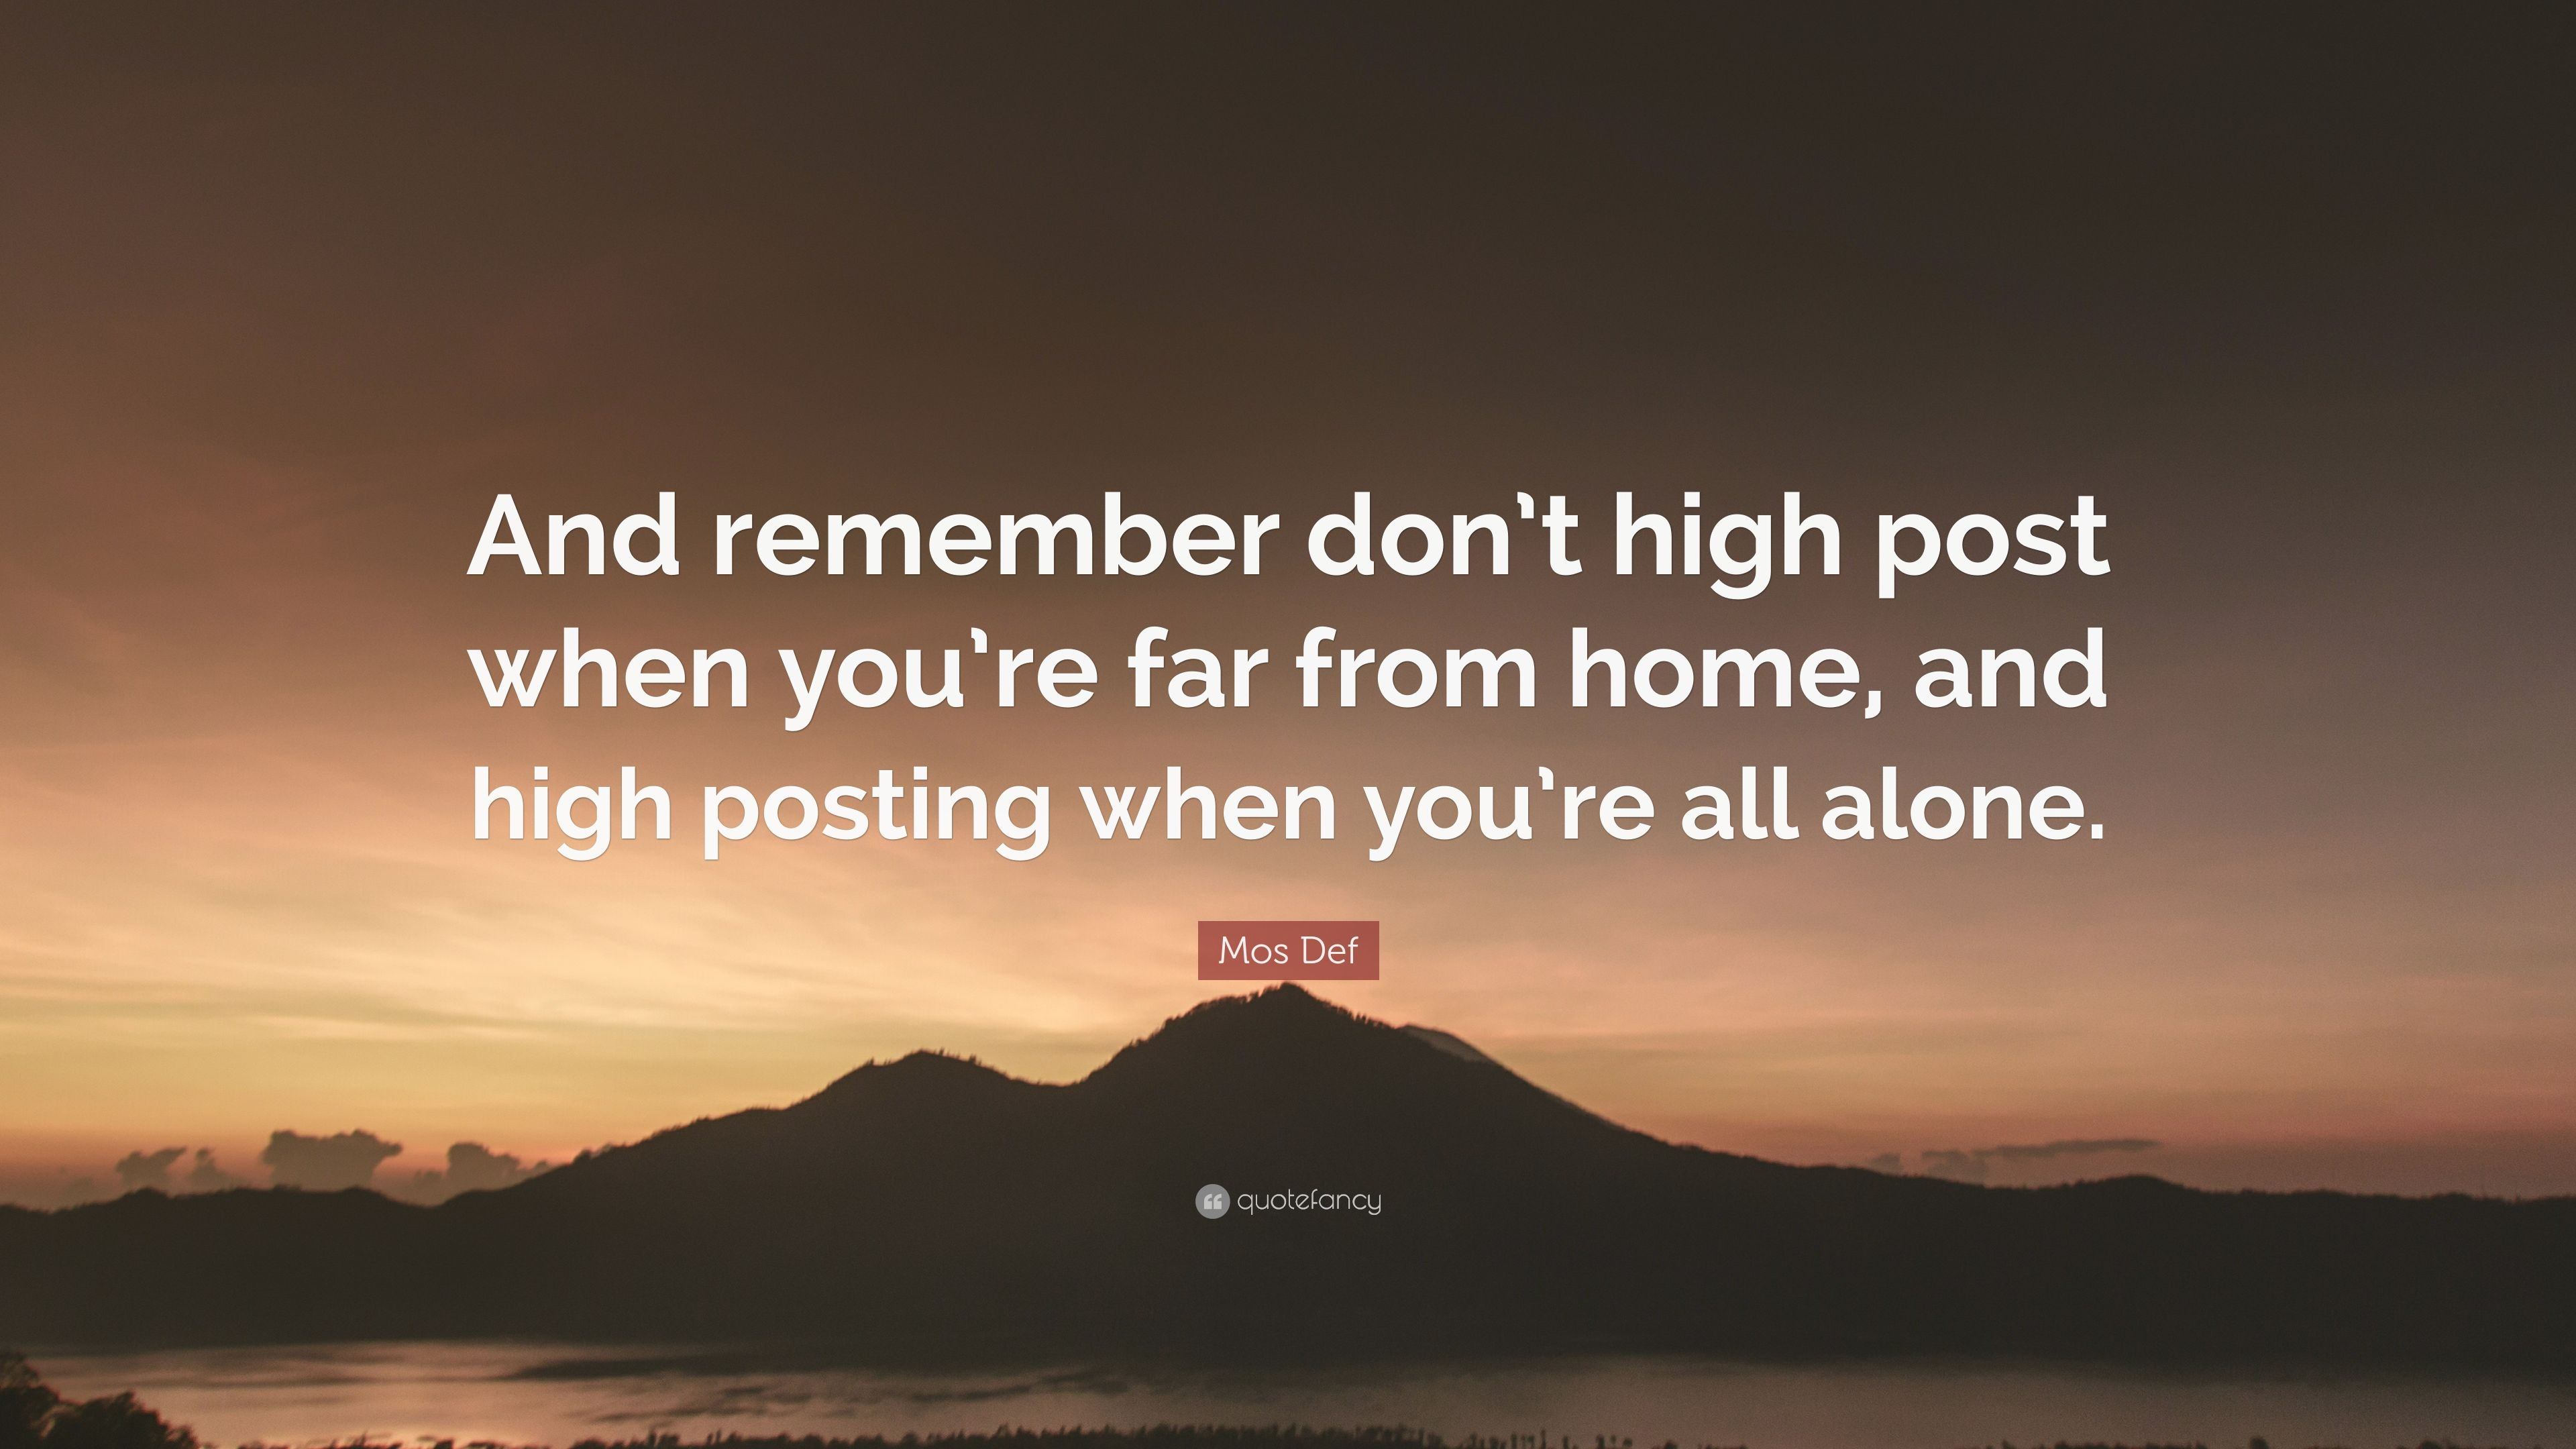 Mos Def Quote And Remember Dont High Post When Youre Far From